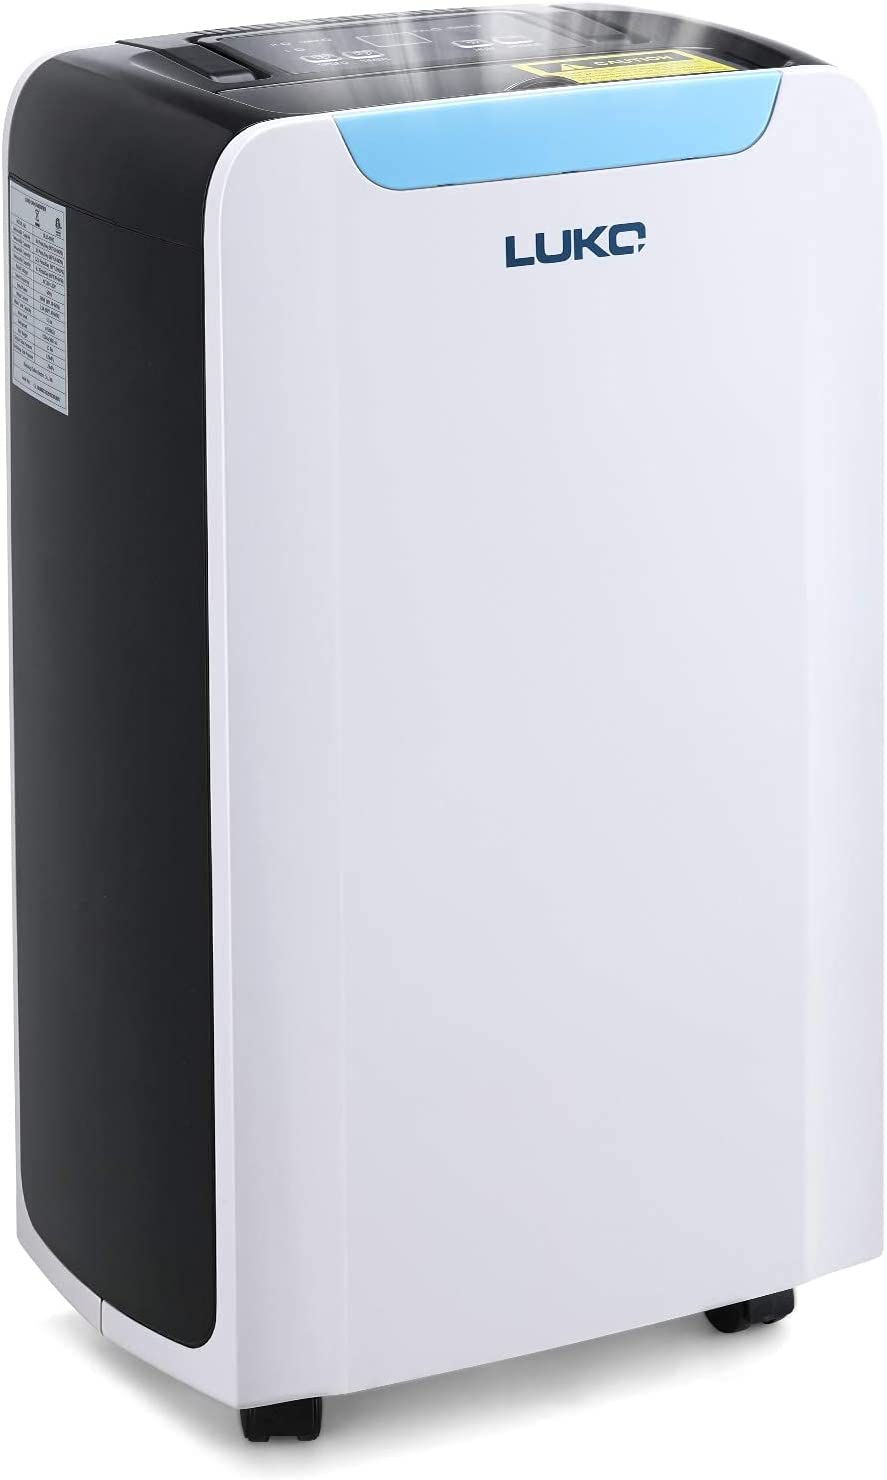 LUKO 30 Charlotte Mall Special Campaign Pint 1600 SQ FT Continuous Drain Home Dehumidifiers with